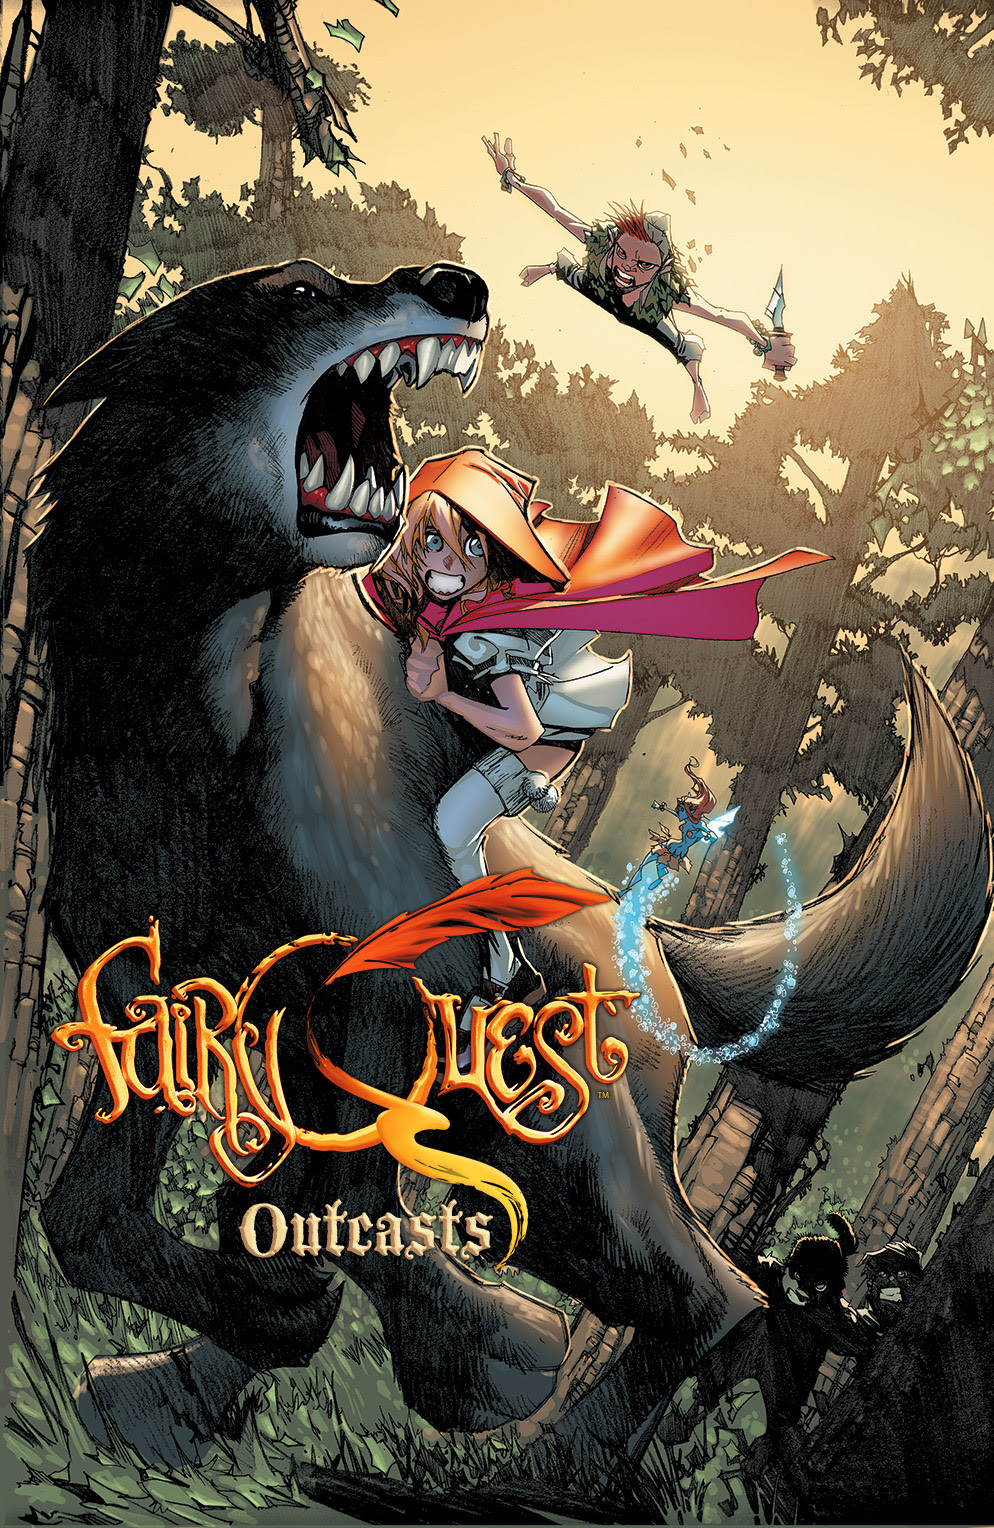 FAIRY QUEST: OUTCASTS #1 Cover A by Humberto Ramos